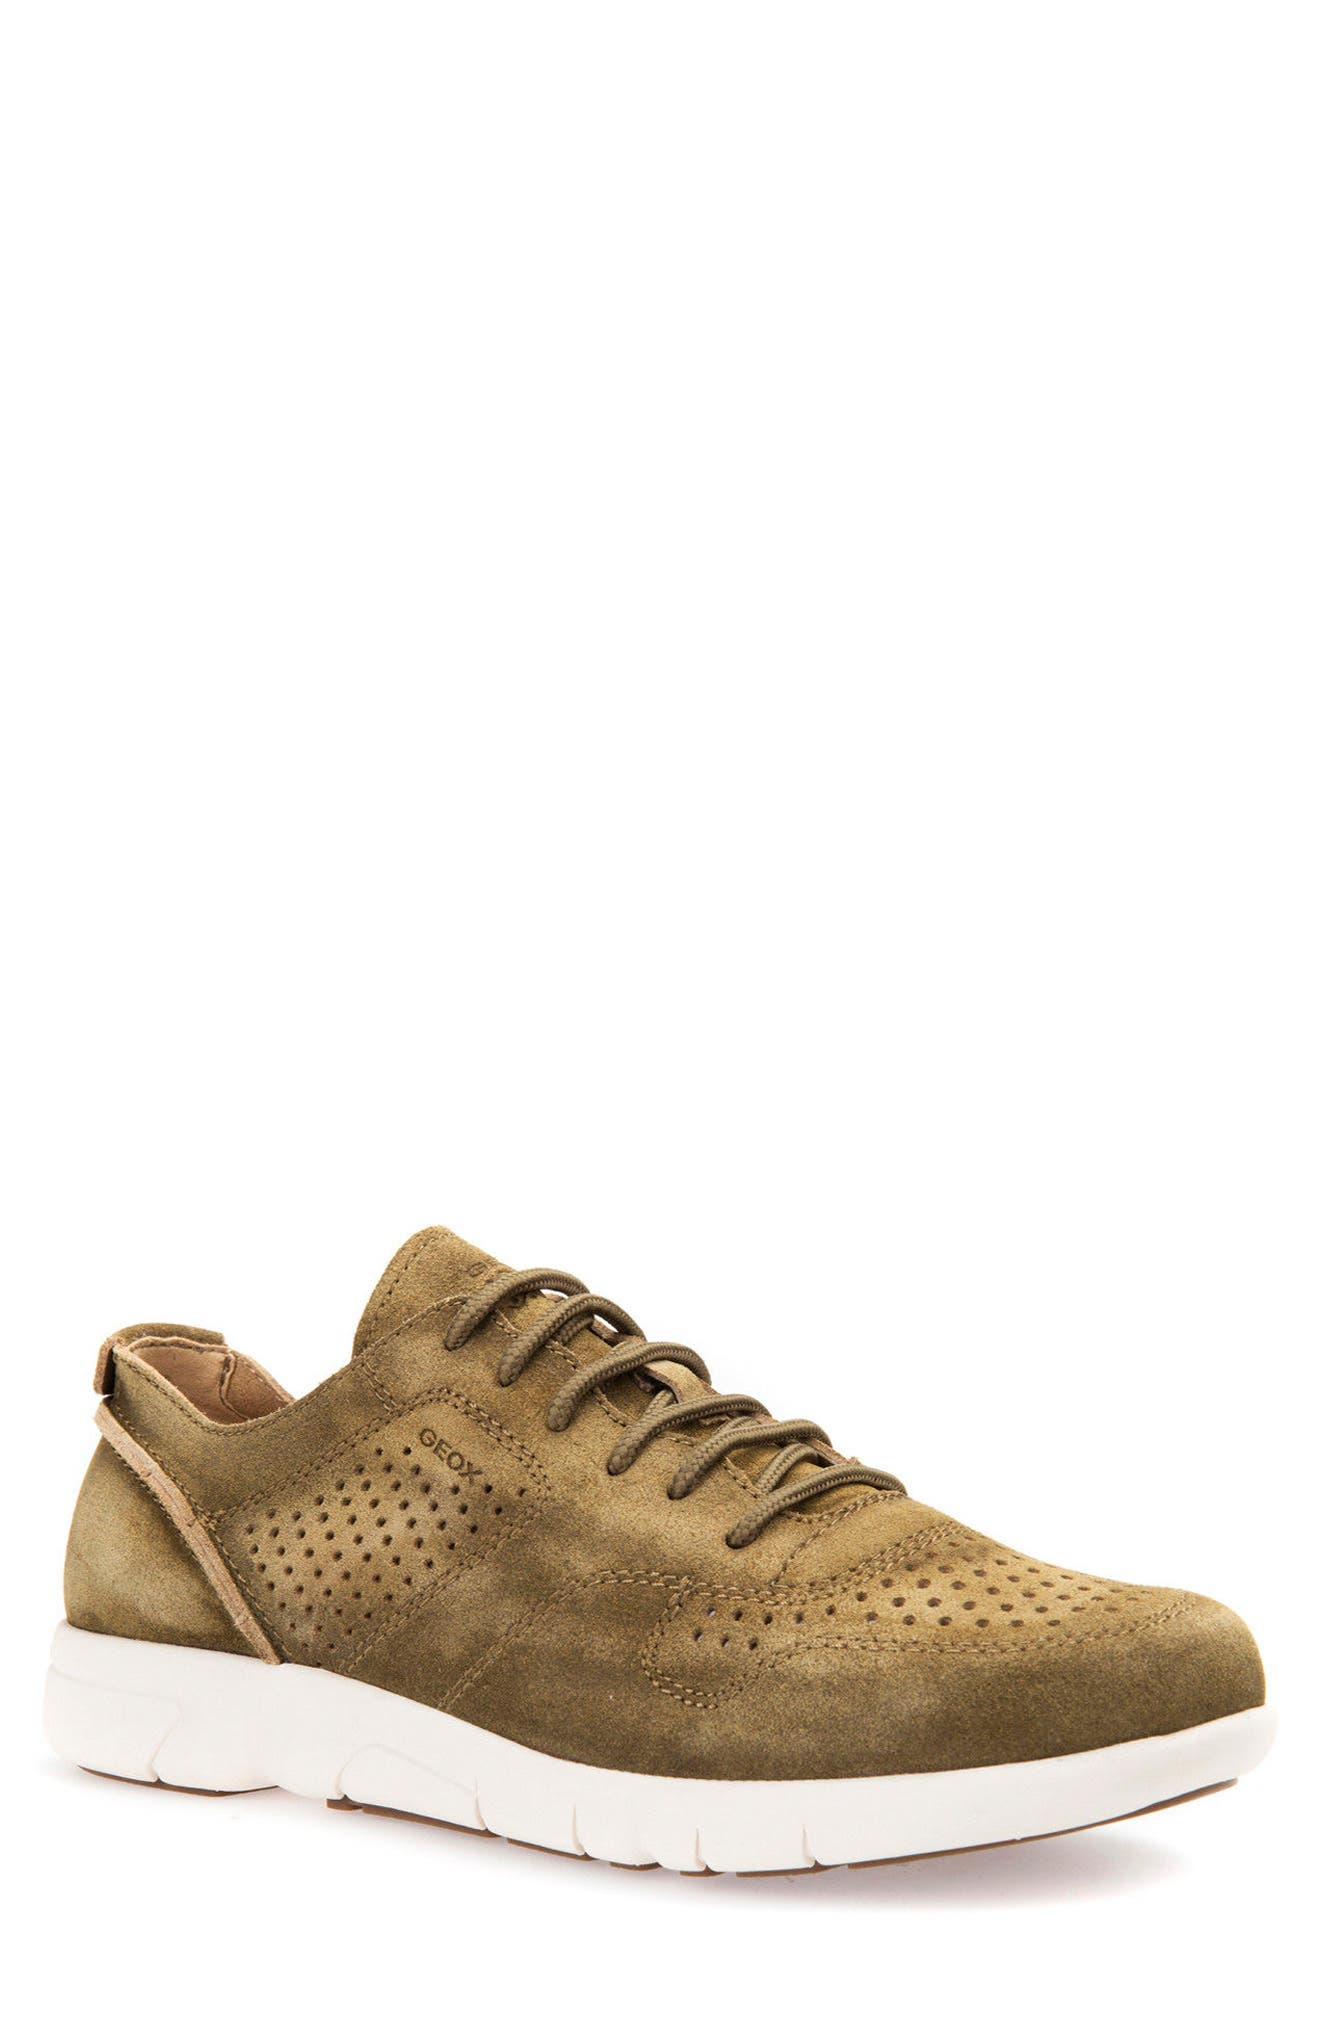 Main Image - Geox Brattley 2 Perforated Sneaker (Men)